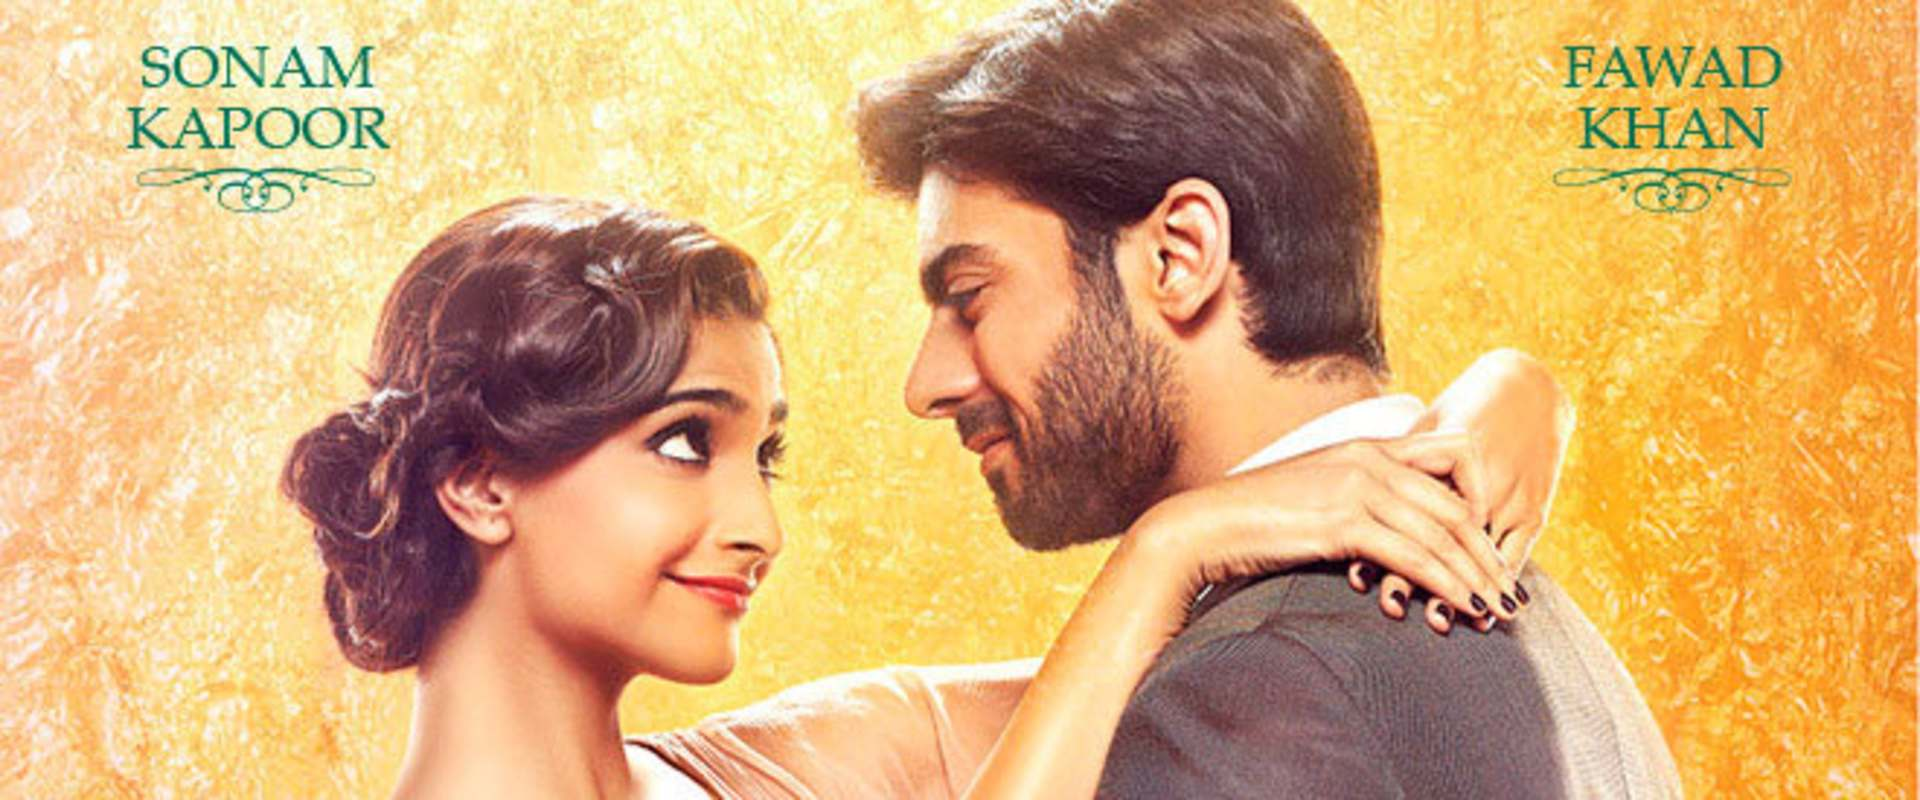 Khoobsurat background 2